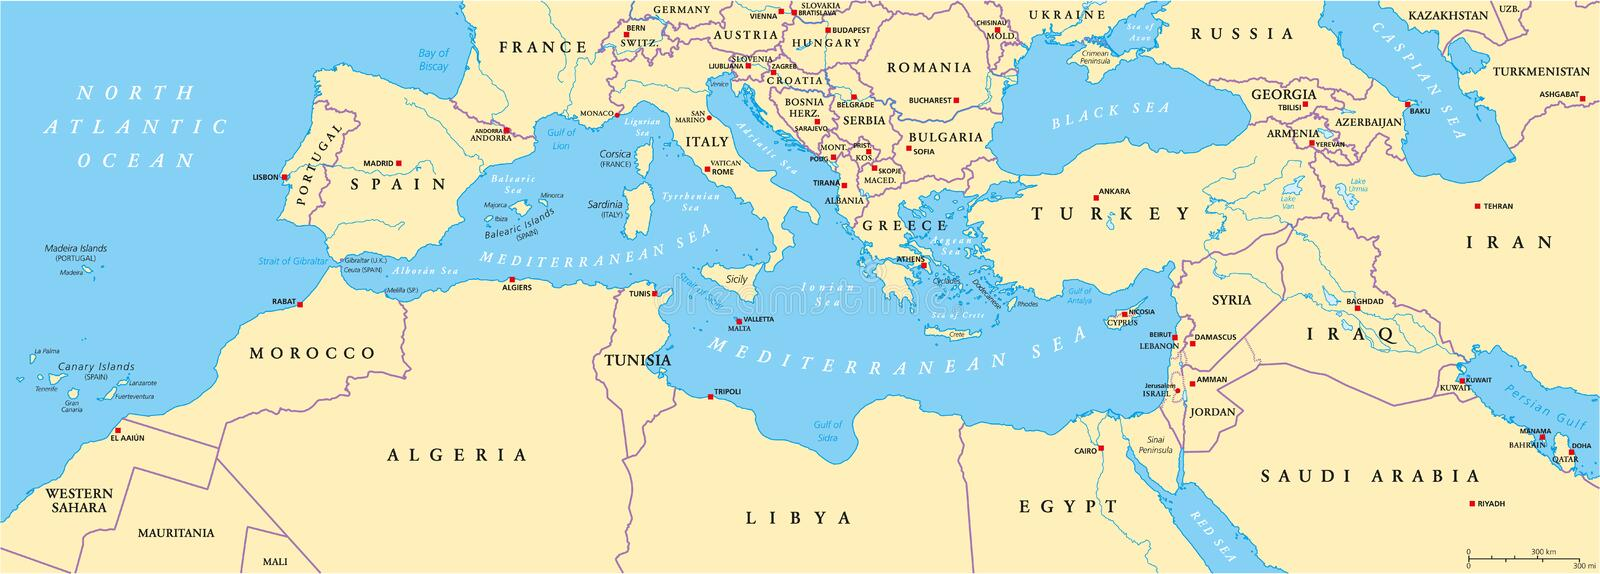 Mediterranean Basin Political Map. South Europe, North Africa and Near East with capitals, national borders, rivers and lakes. English labeling and scaling royalty free illustration